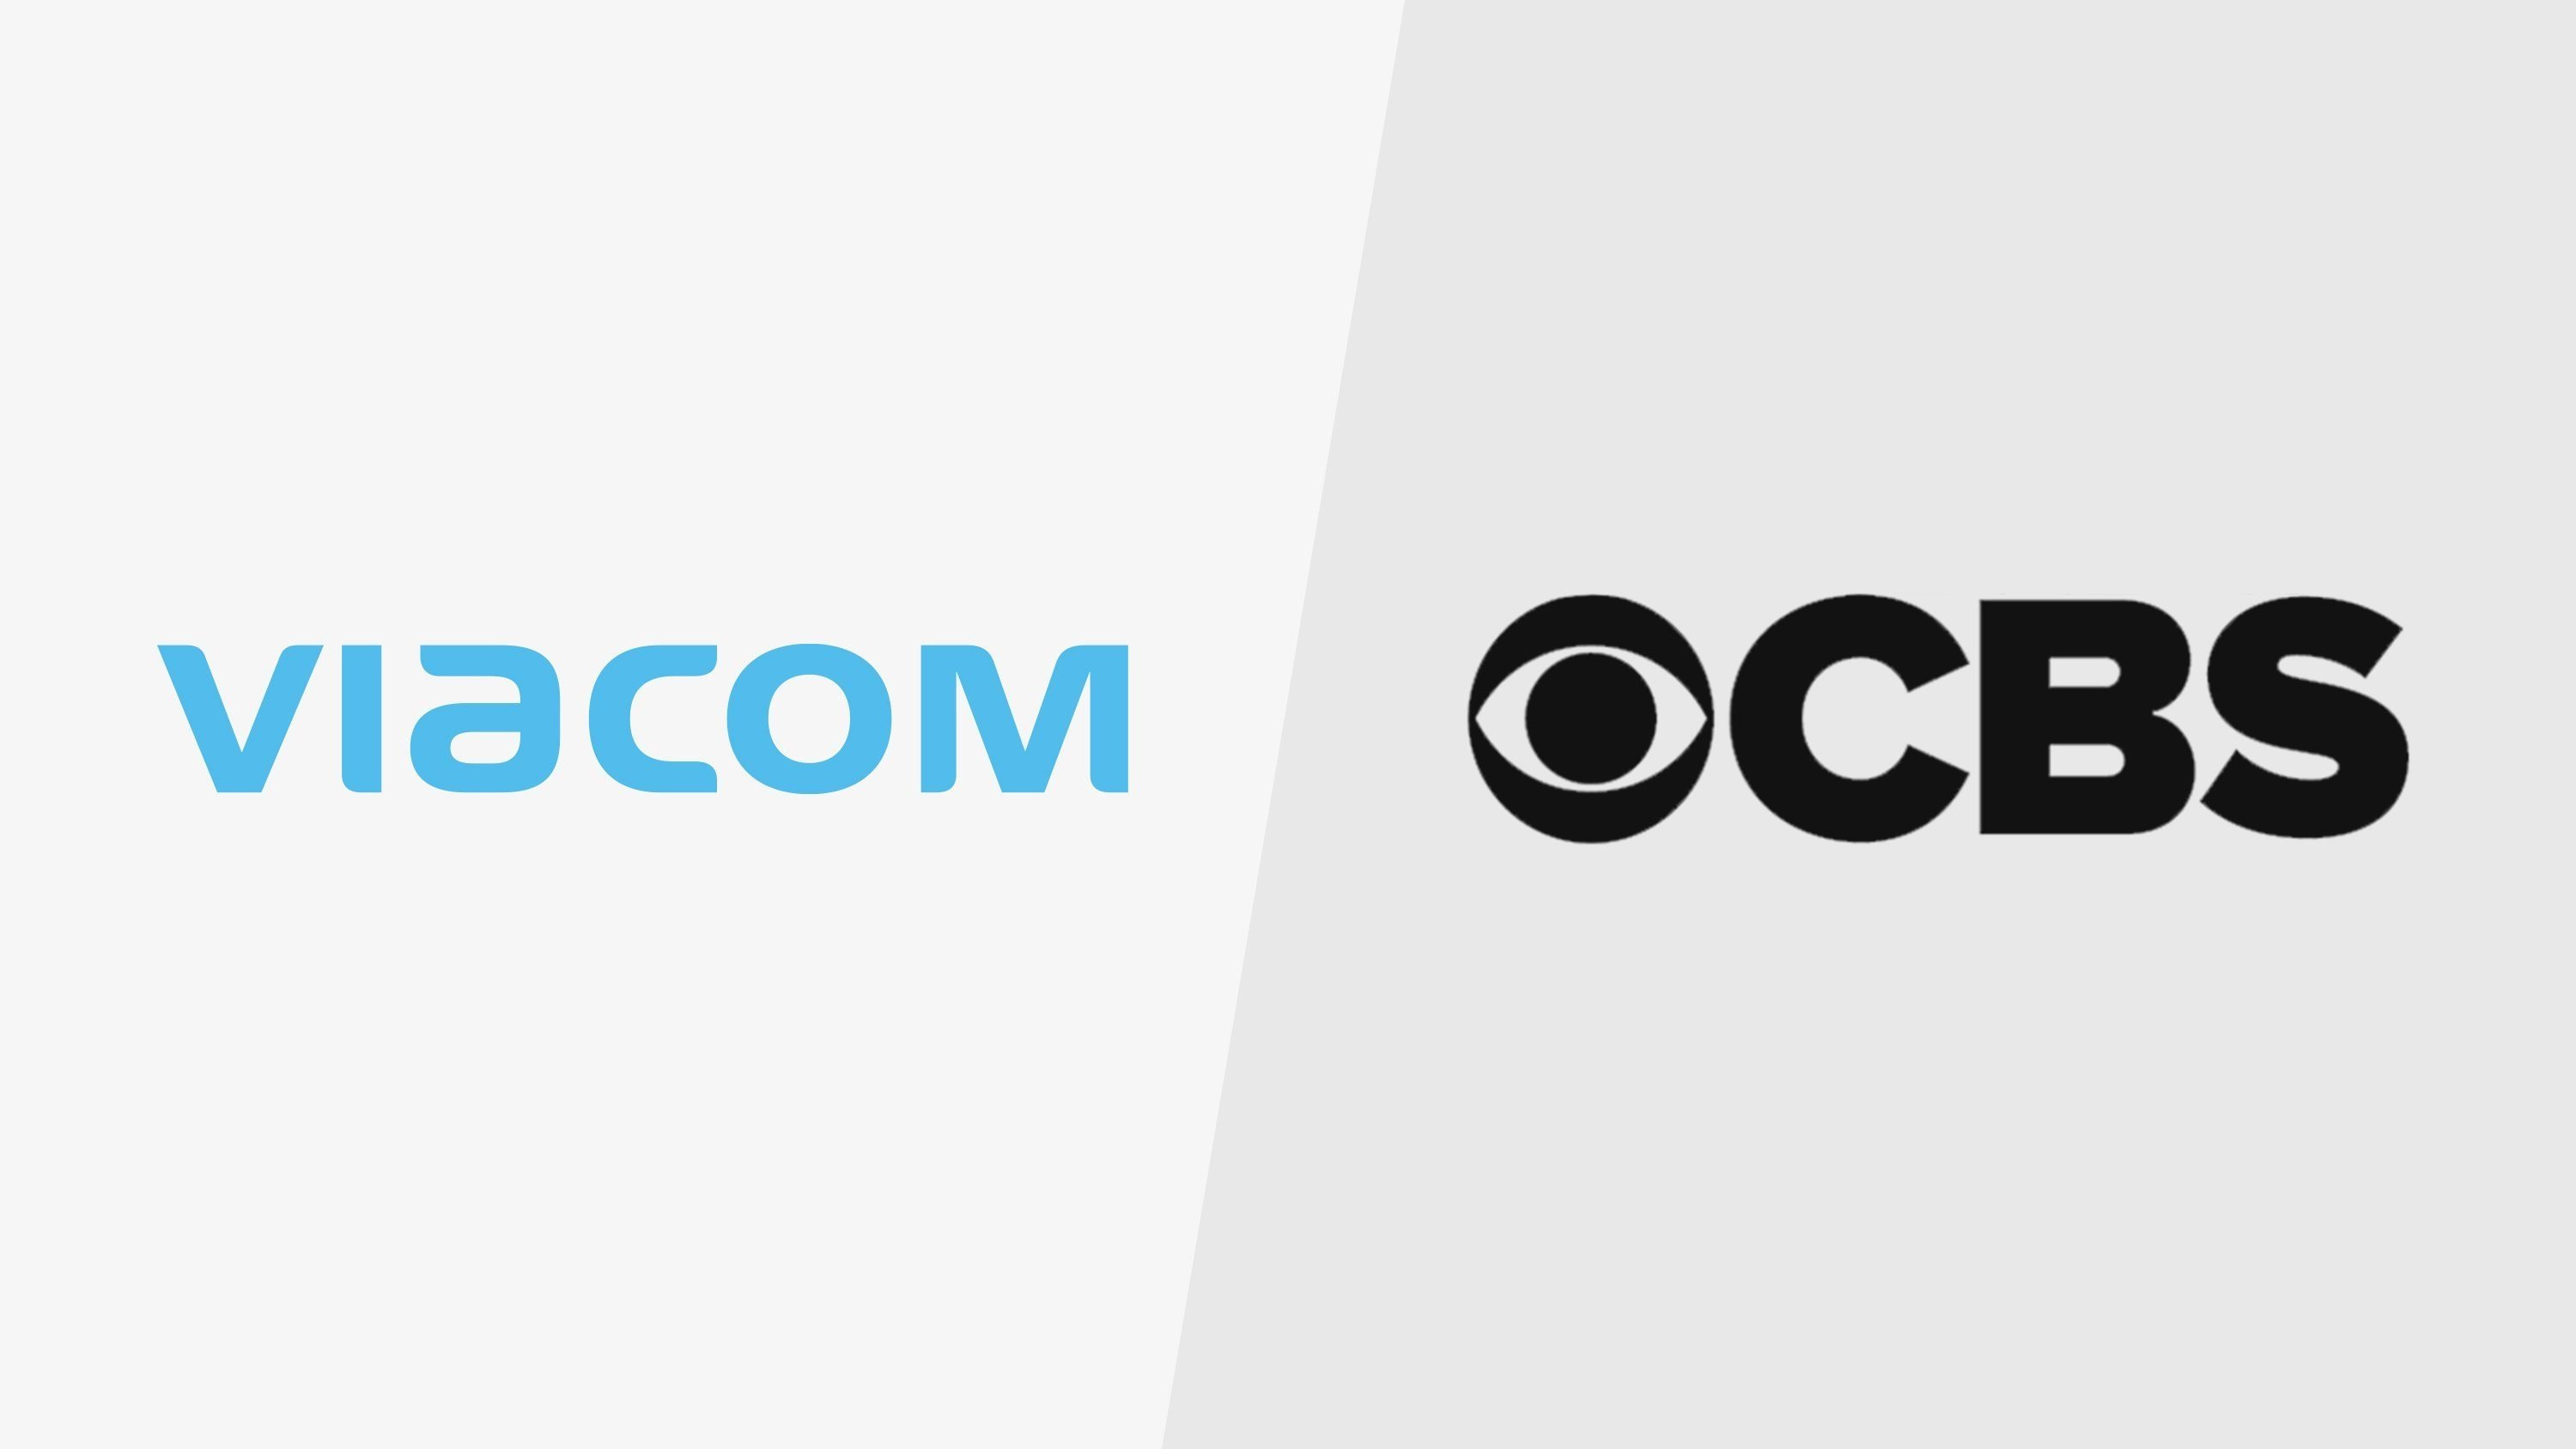 Verizon Expressed Interest In Acquiring CBS Before Viacom Talks Heated Up